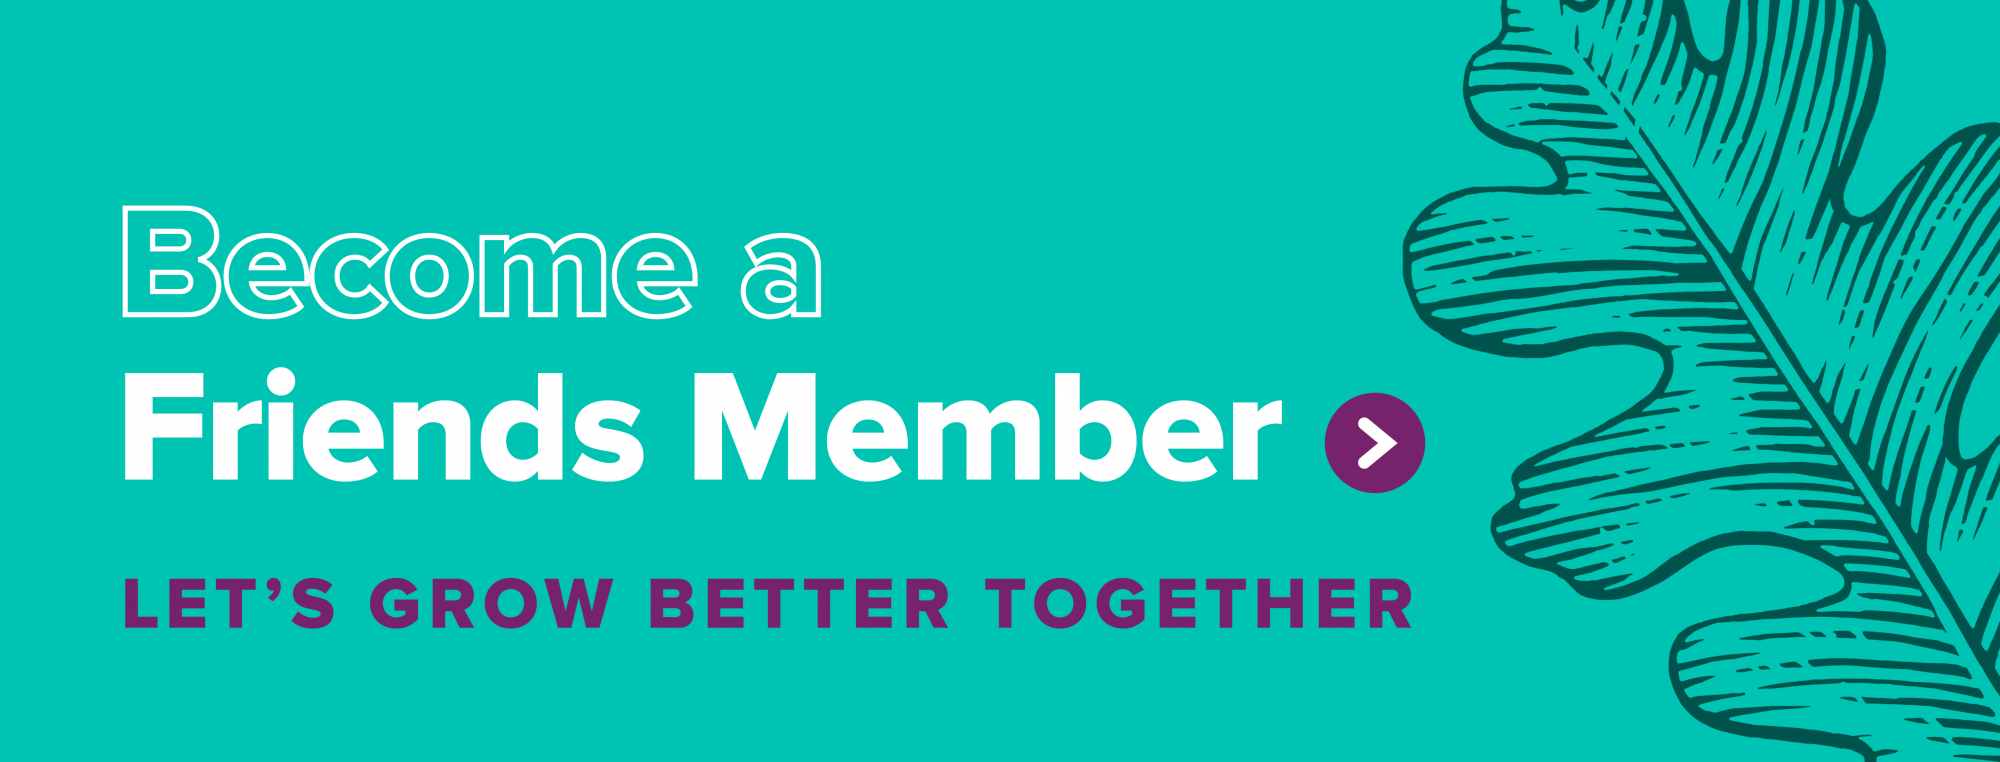 Become a Friends Member - Let's grow better together